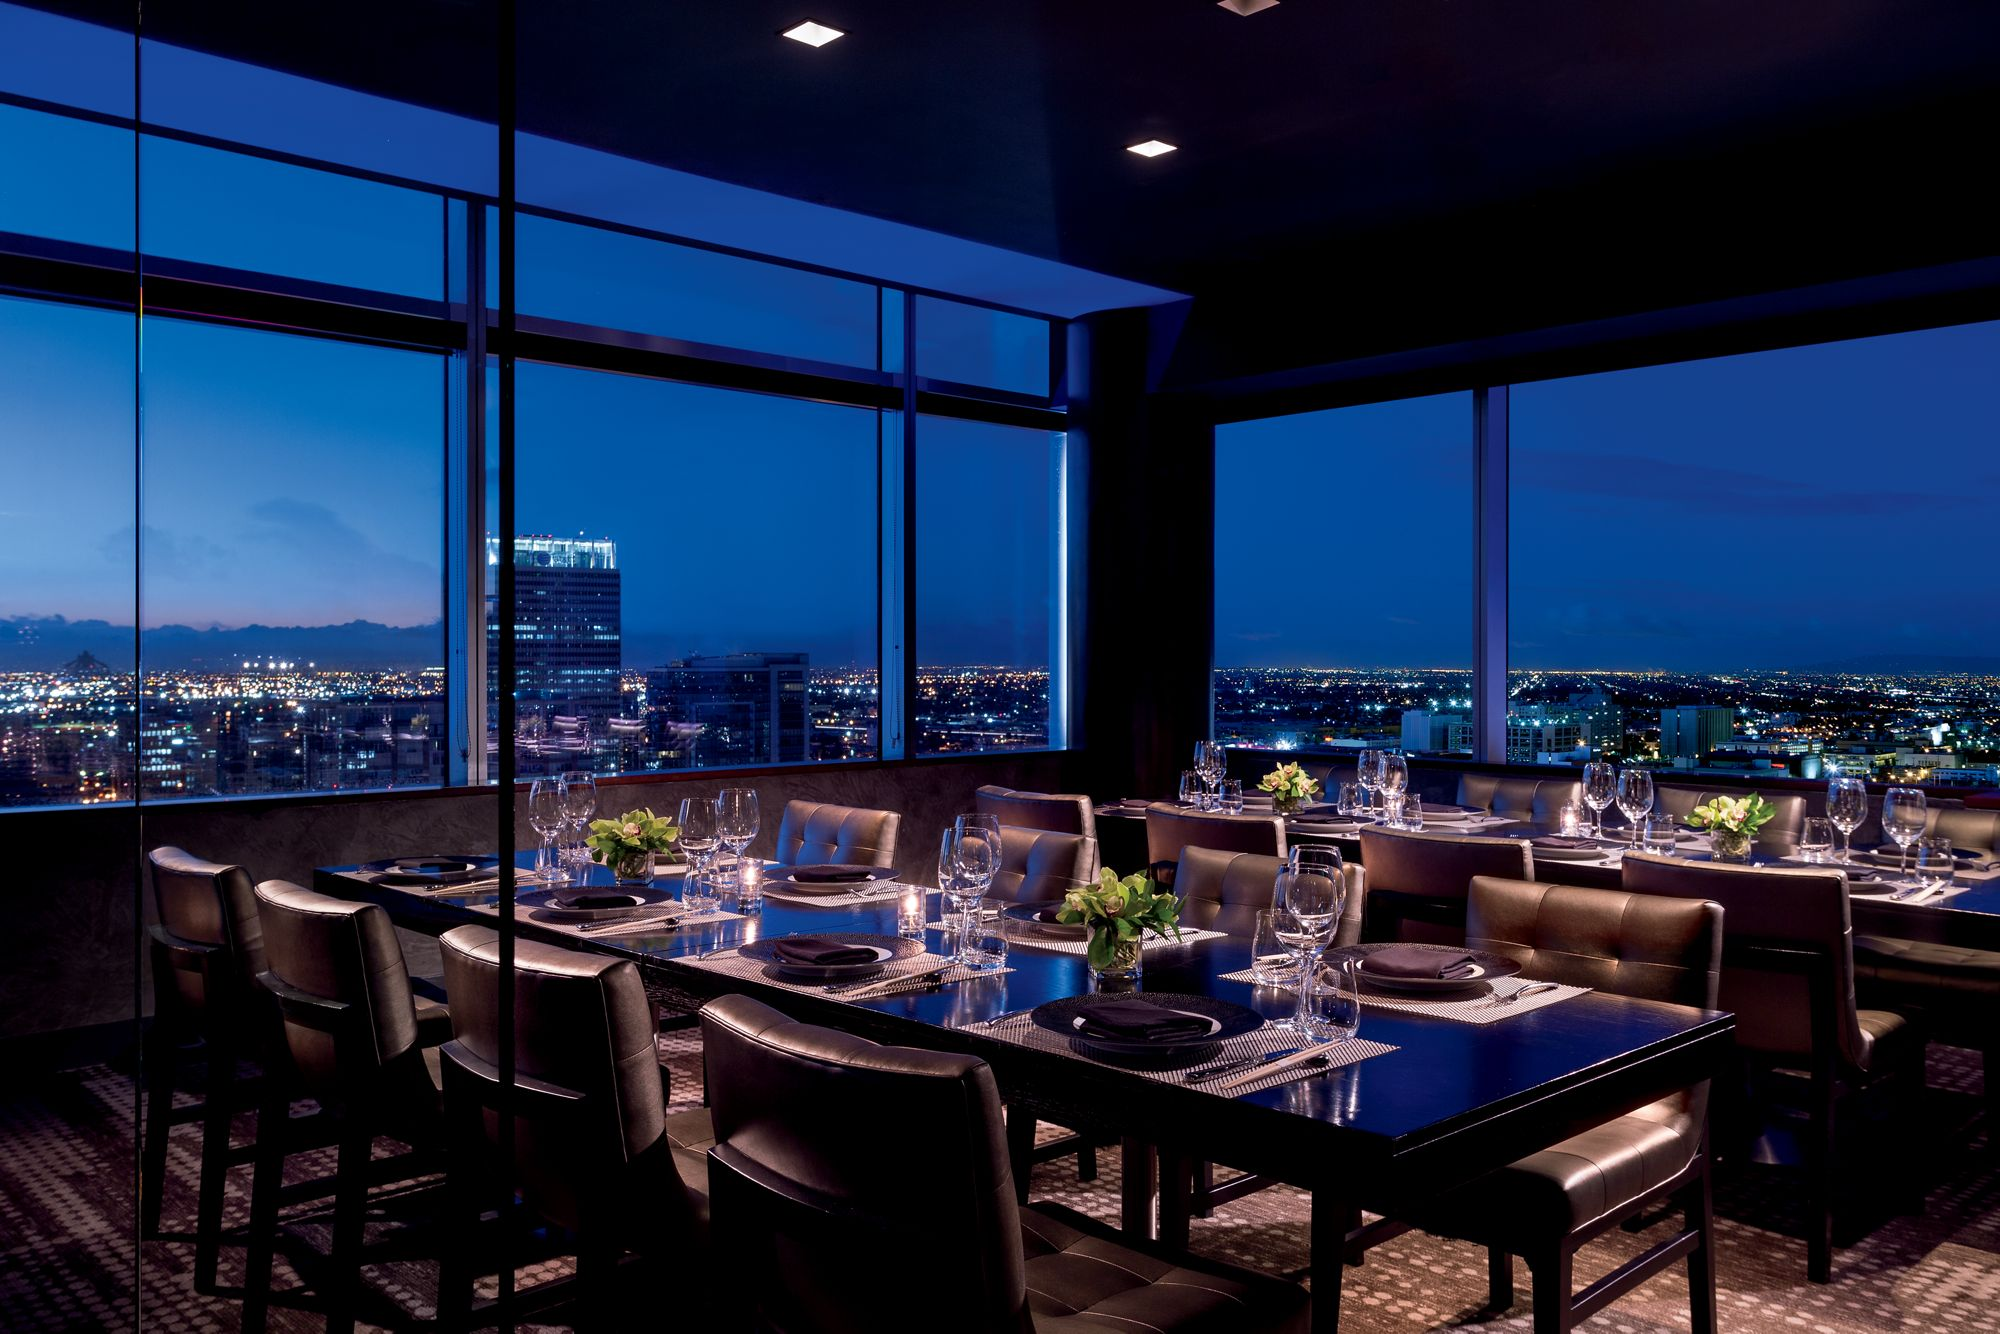 Downtown Los Angeles Restaurants With A View Wp24 By